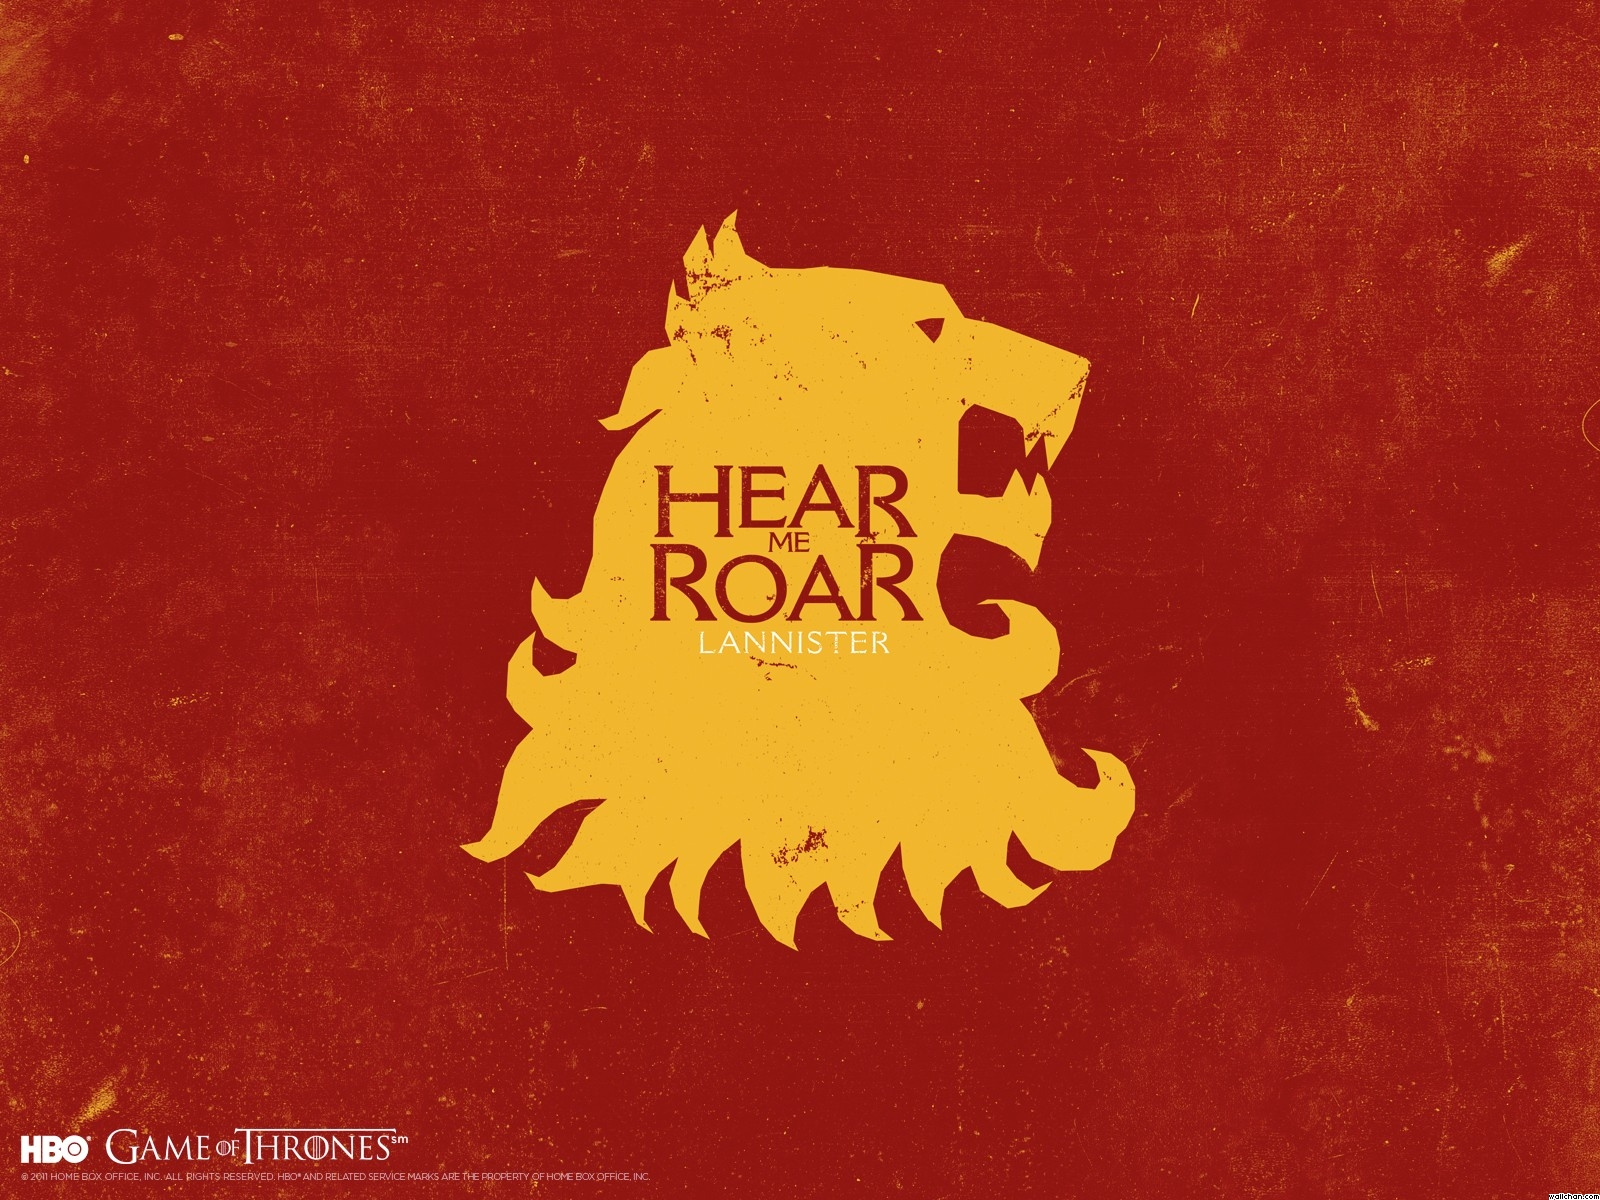 Game of thrones house lannister wallpaper game of thrones for House of wallpaper